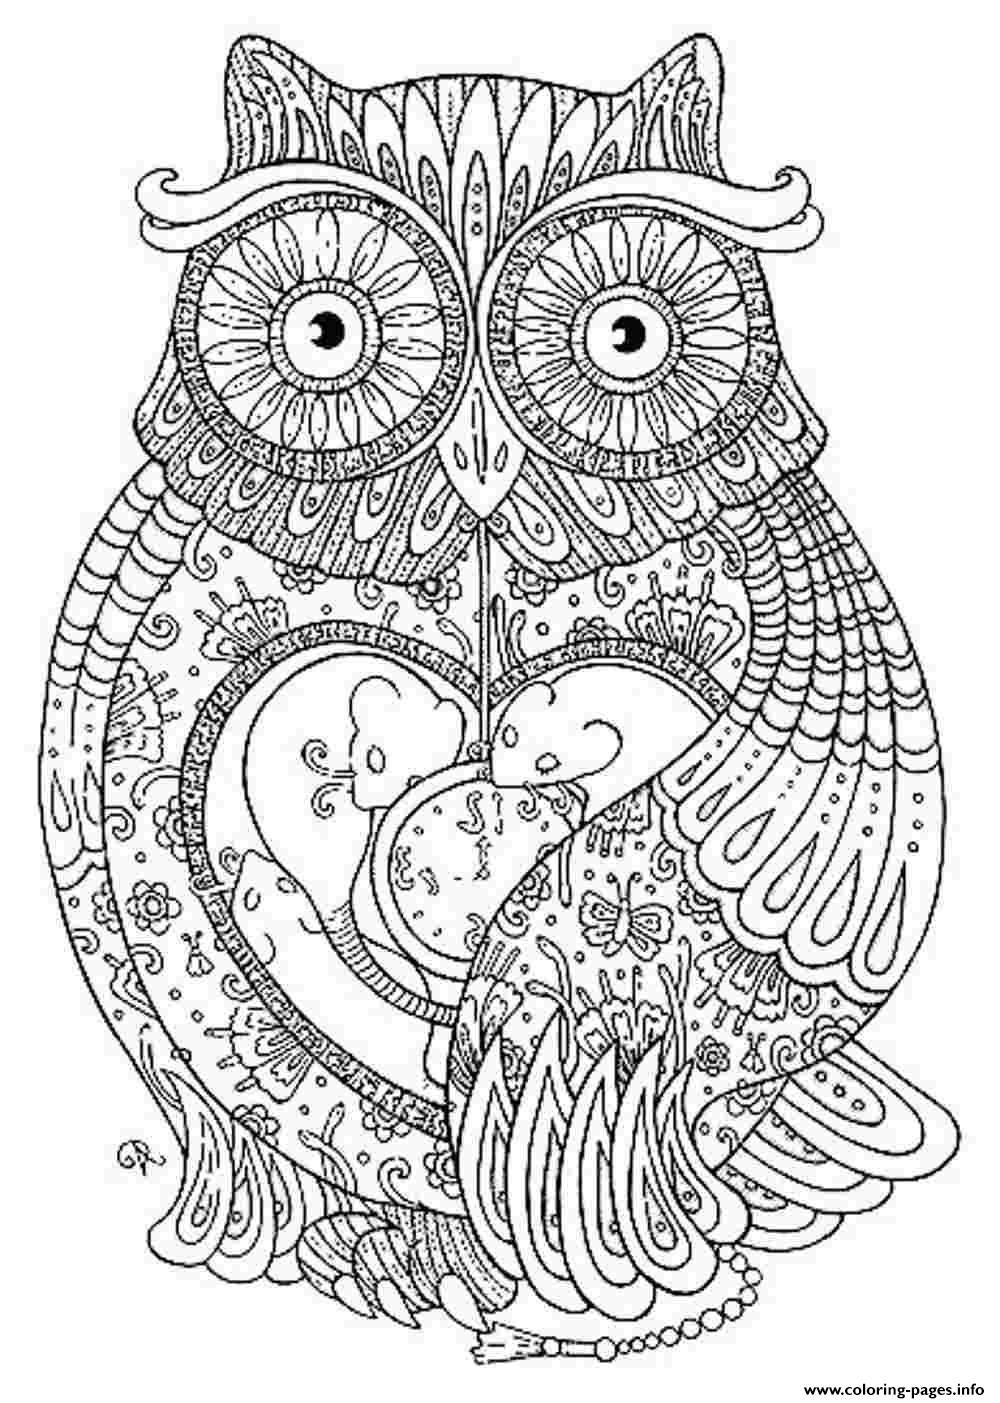 Print Animal Coloring Pages For Adults Coloring Pages Owl Coloring Pages Detailed Coloring Pages Abstract Coloring Pages